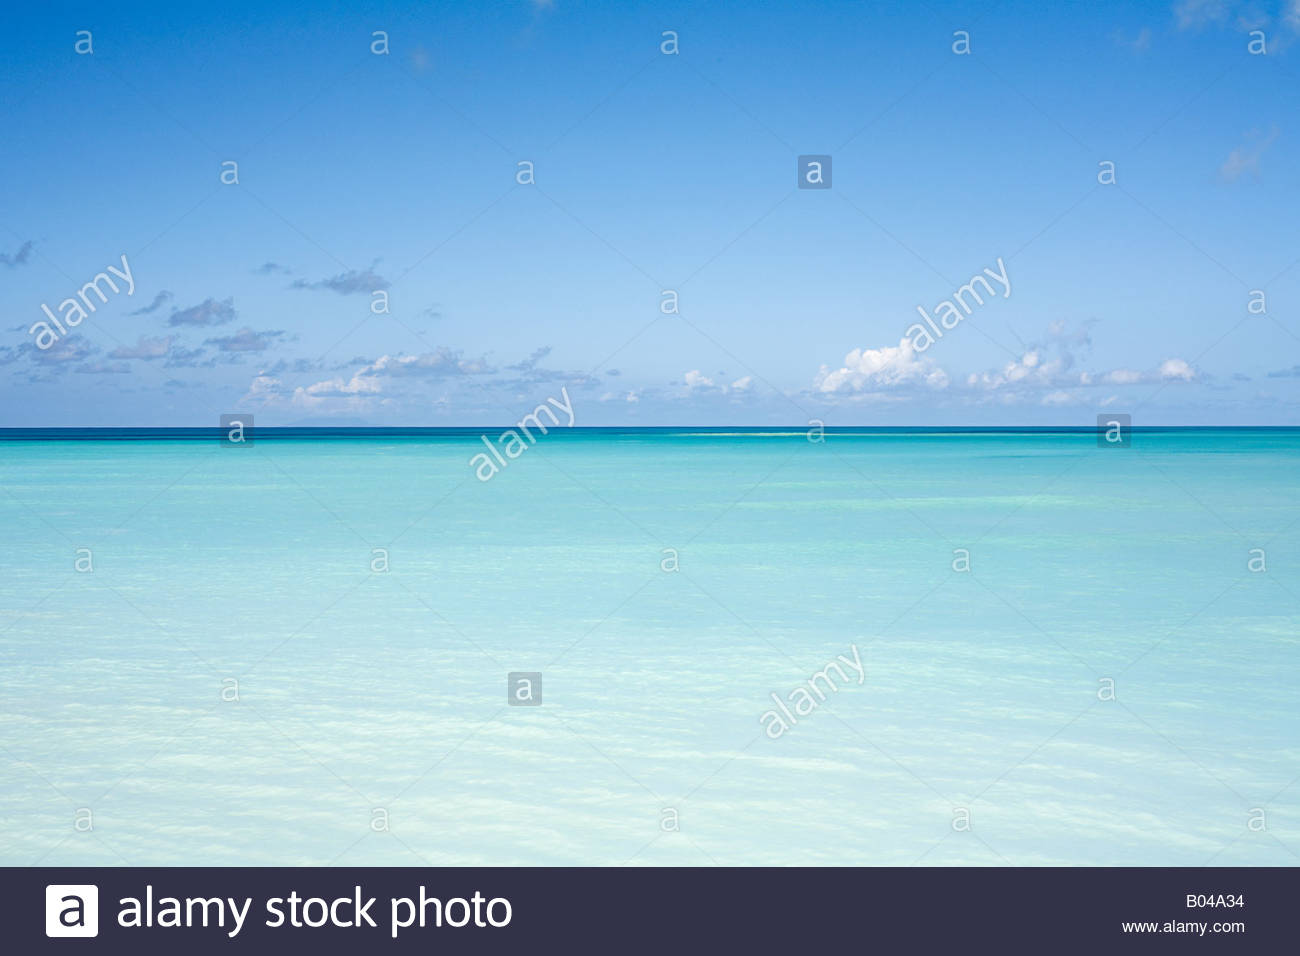 The ocean - Stock Image